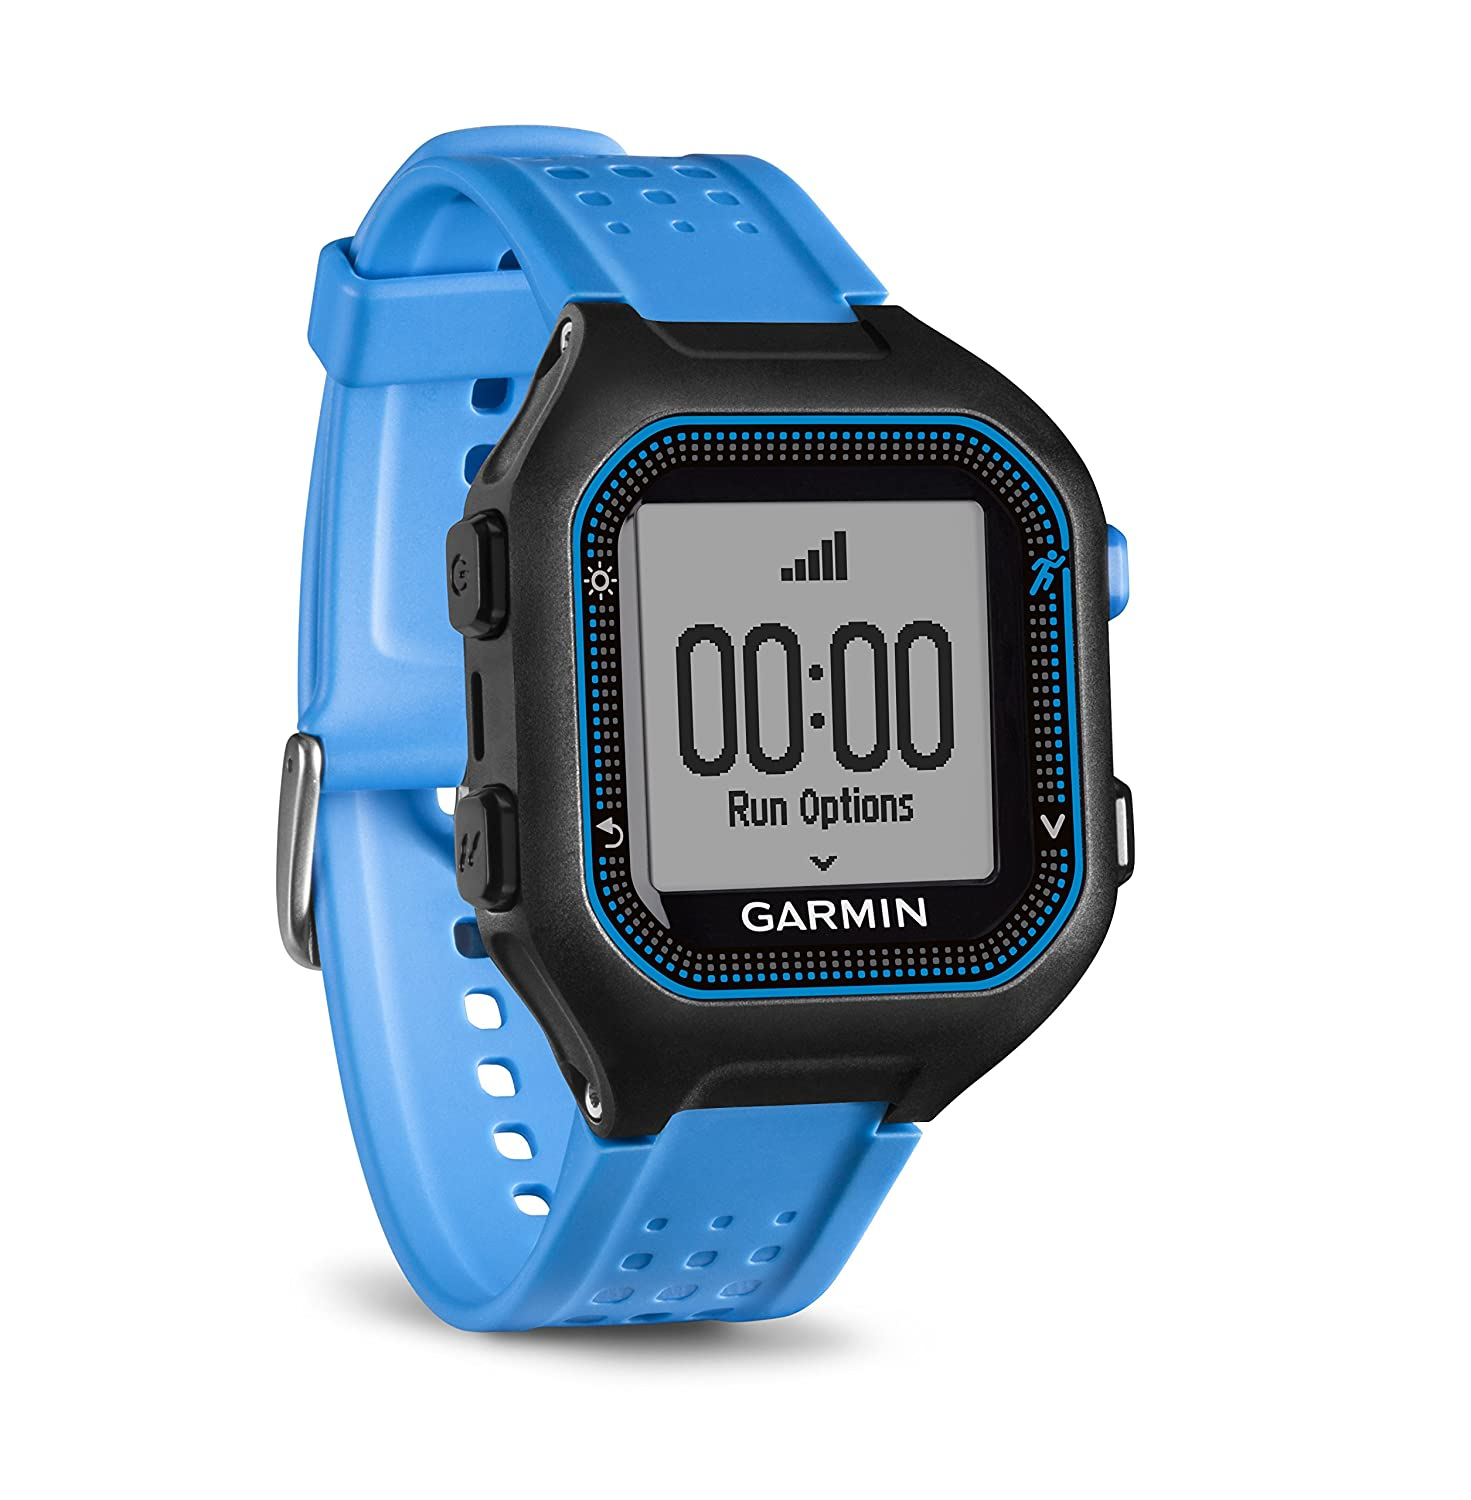 how to connect garmin forerunner 305 to the computer